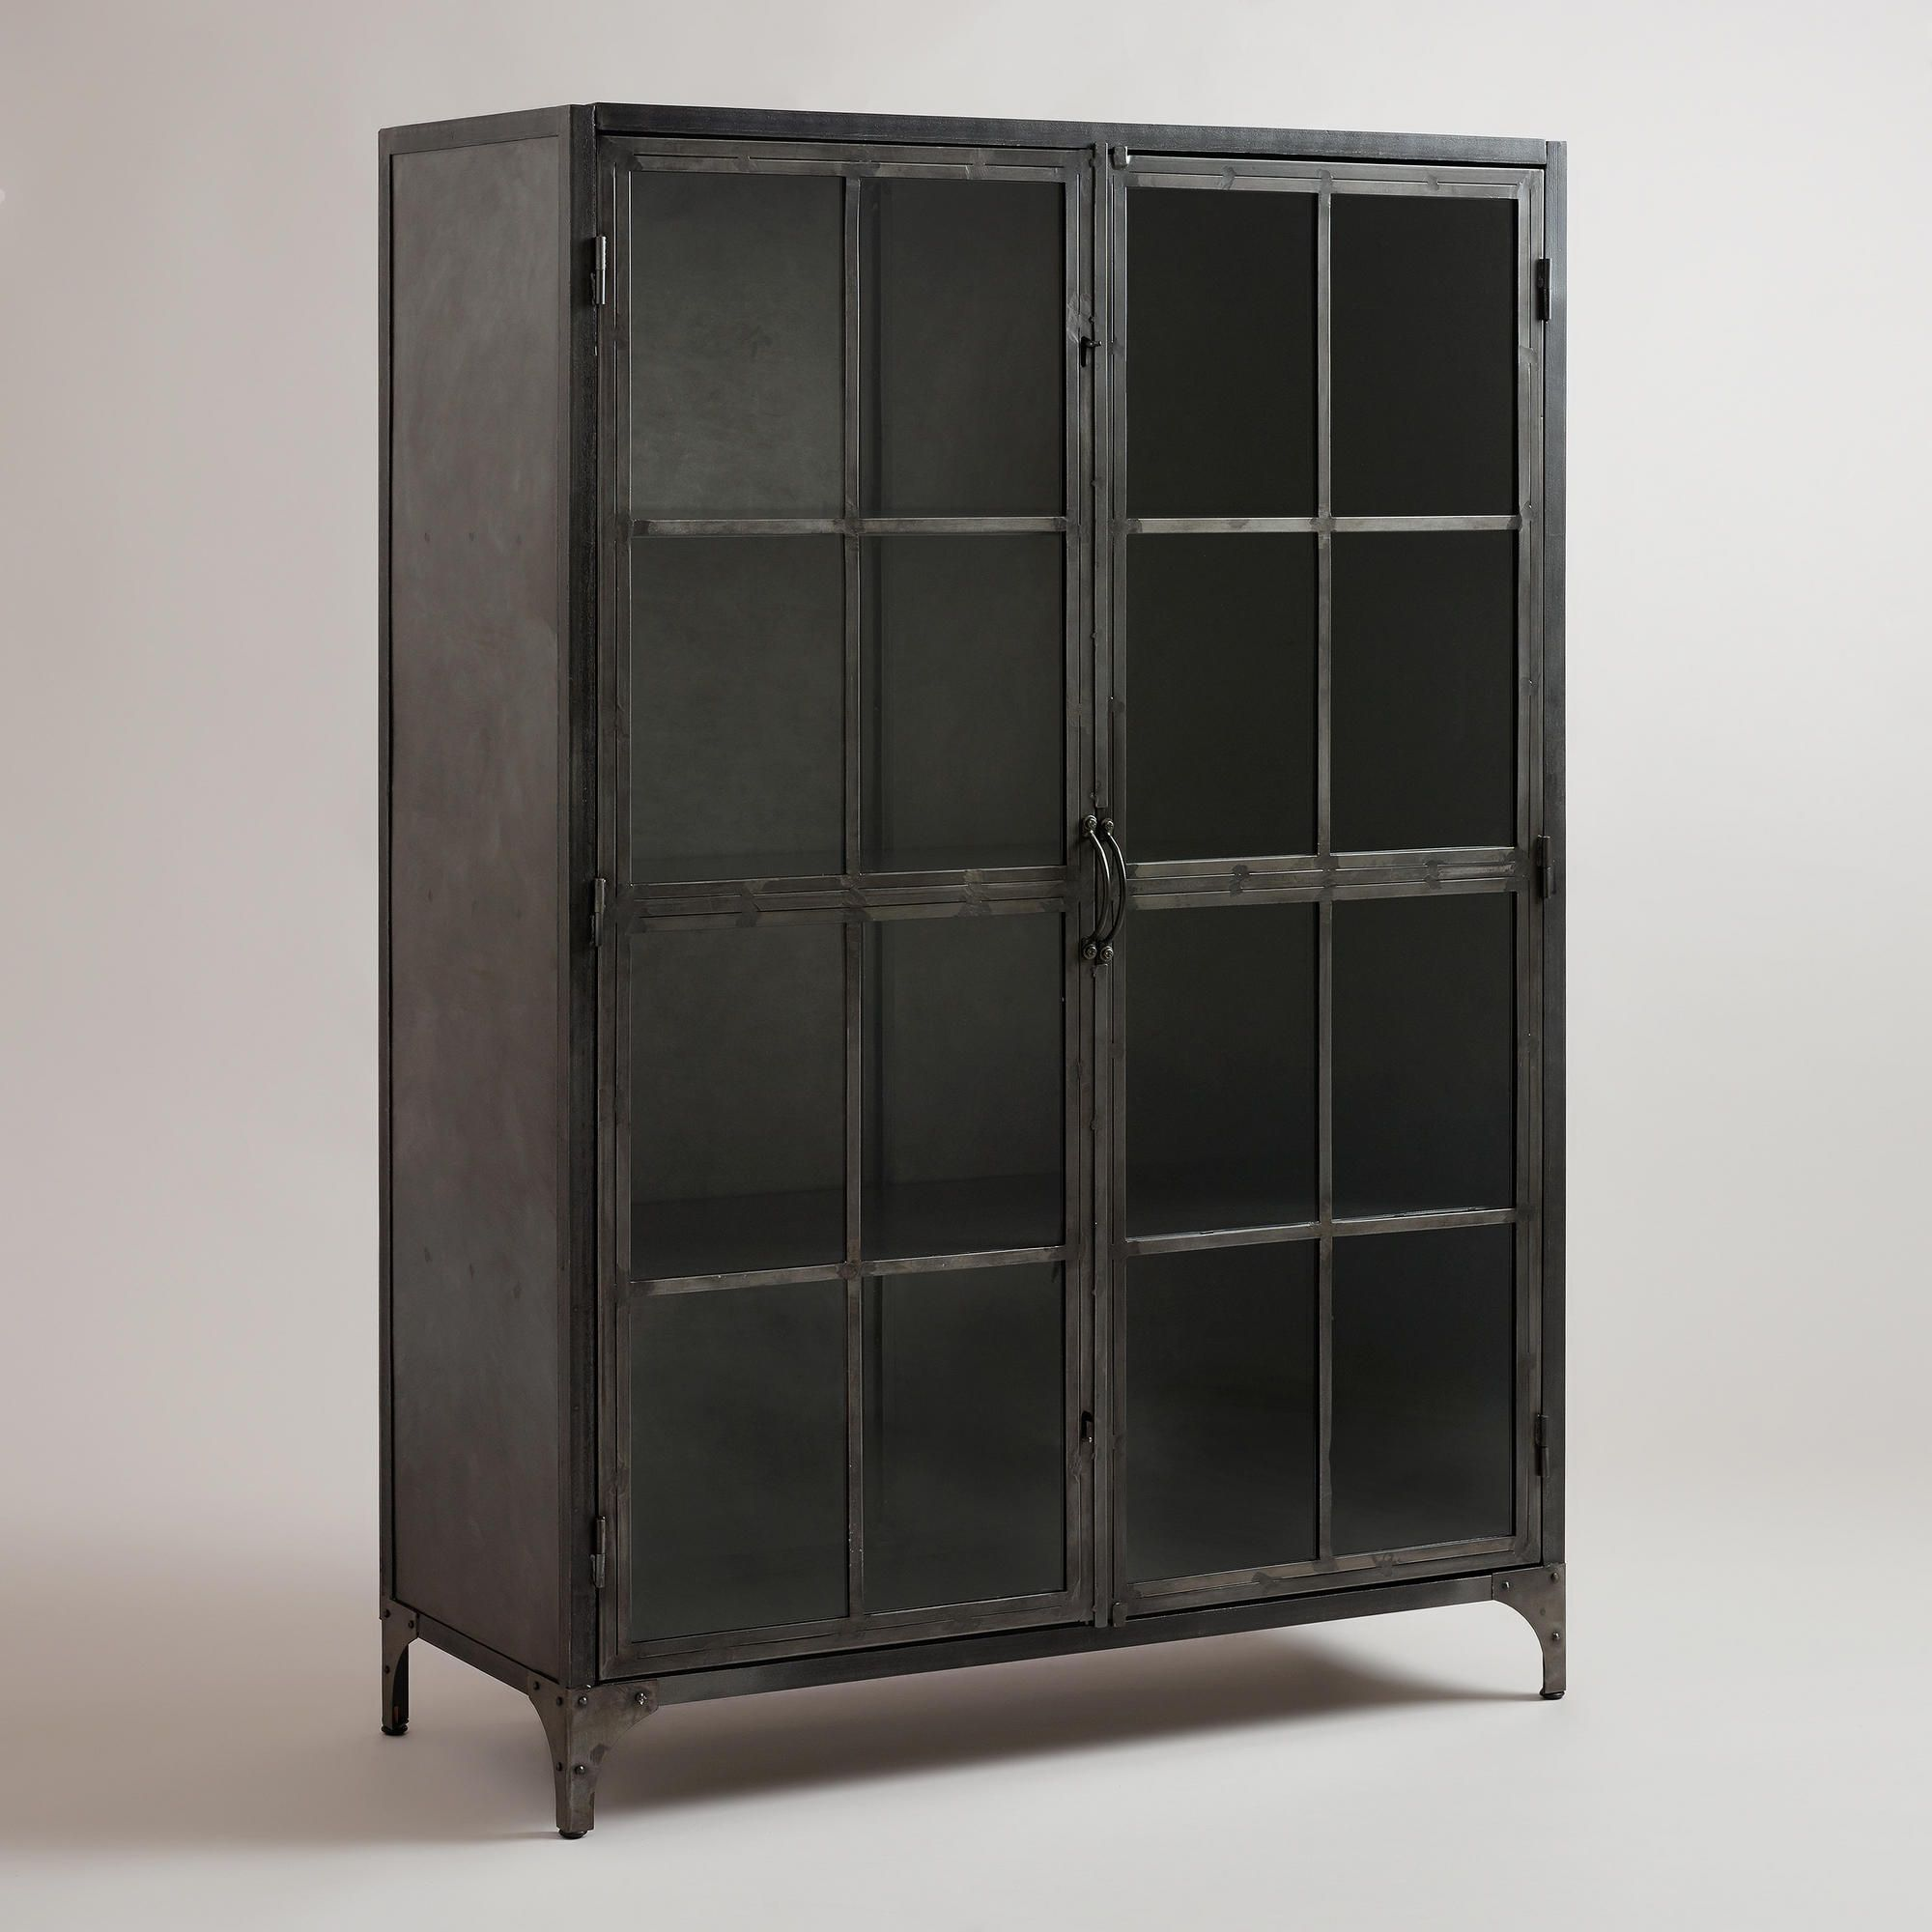 Metal Display Cabinet  Industrial  Storage Units And Cabinets